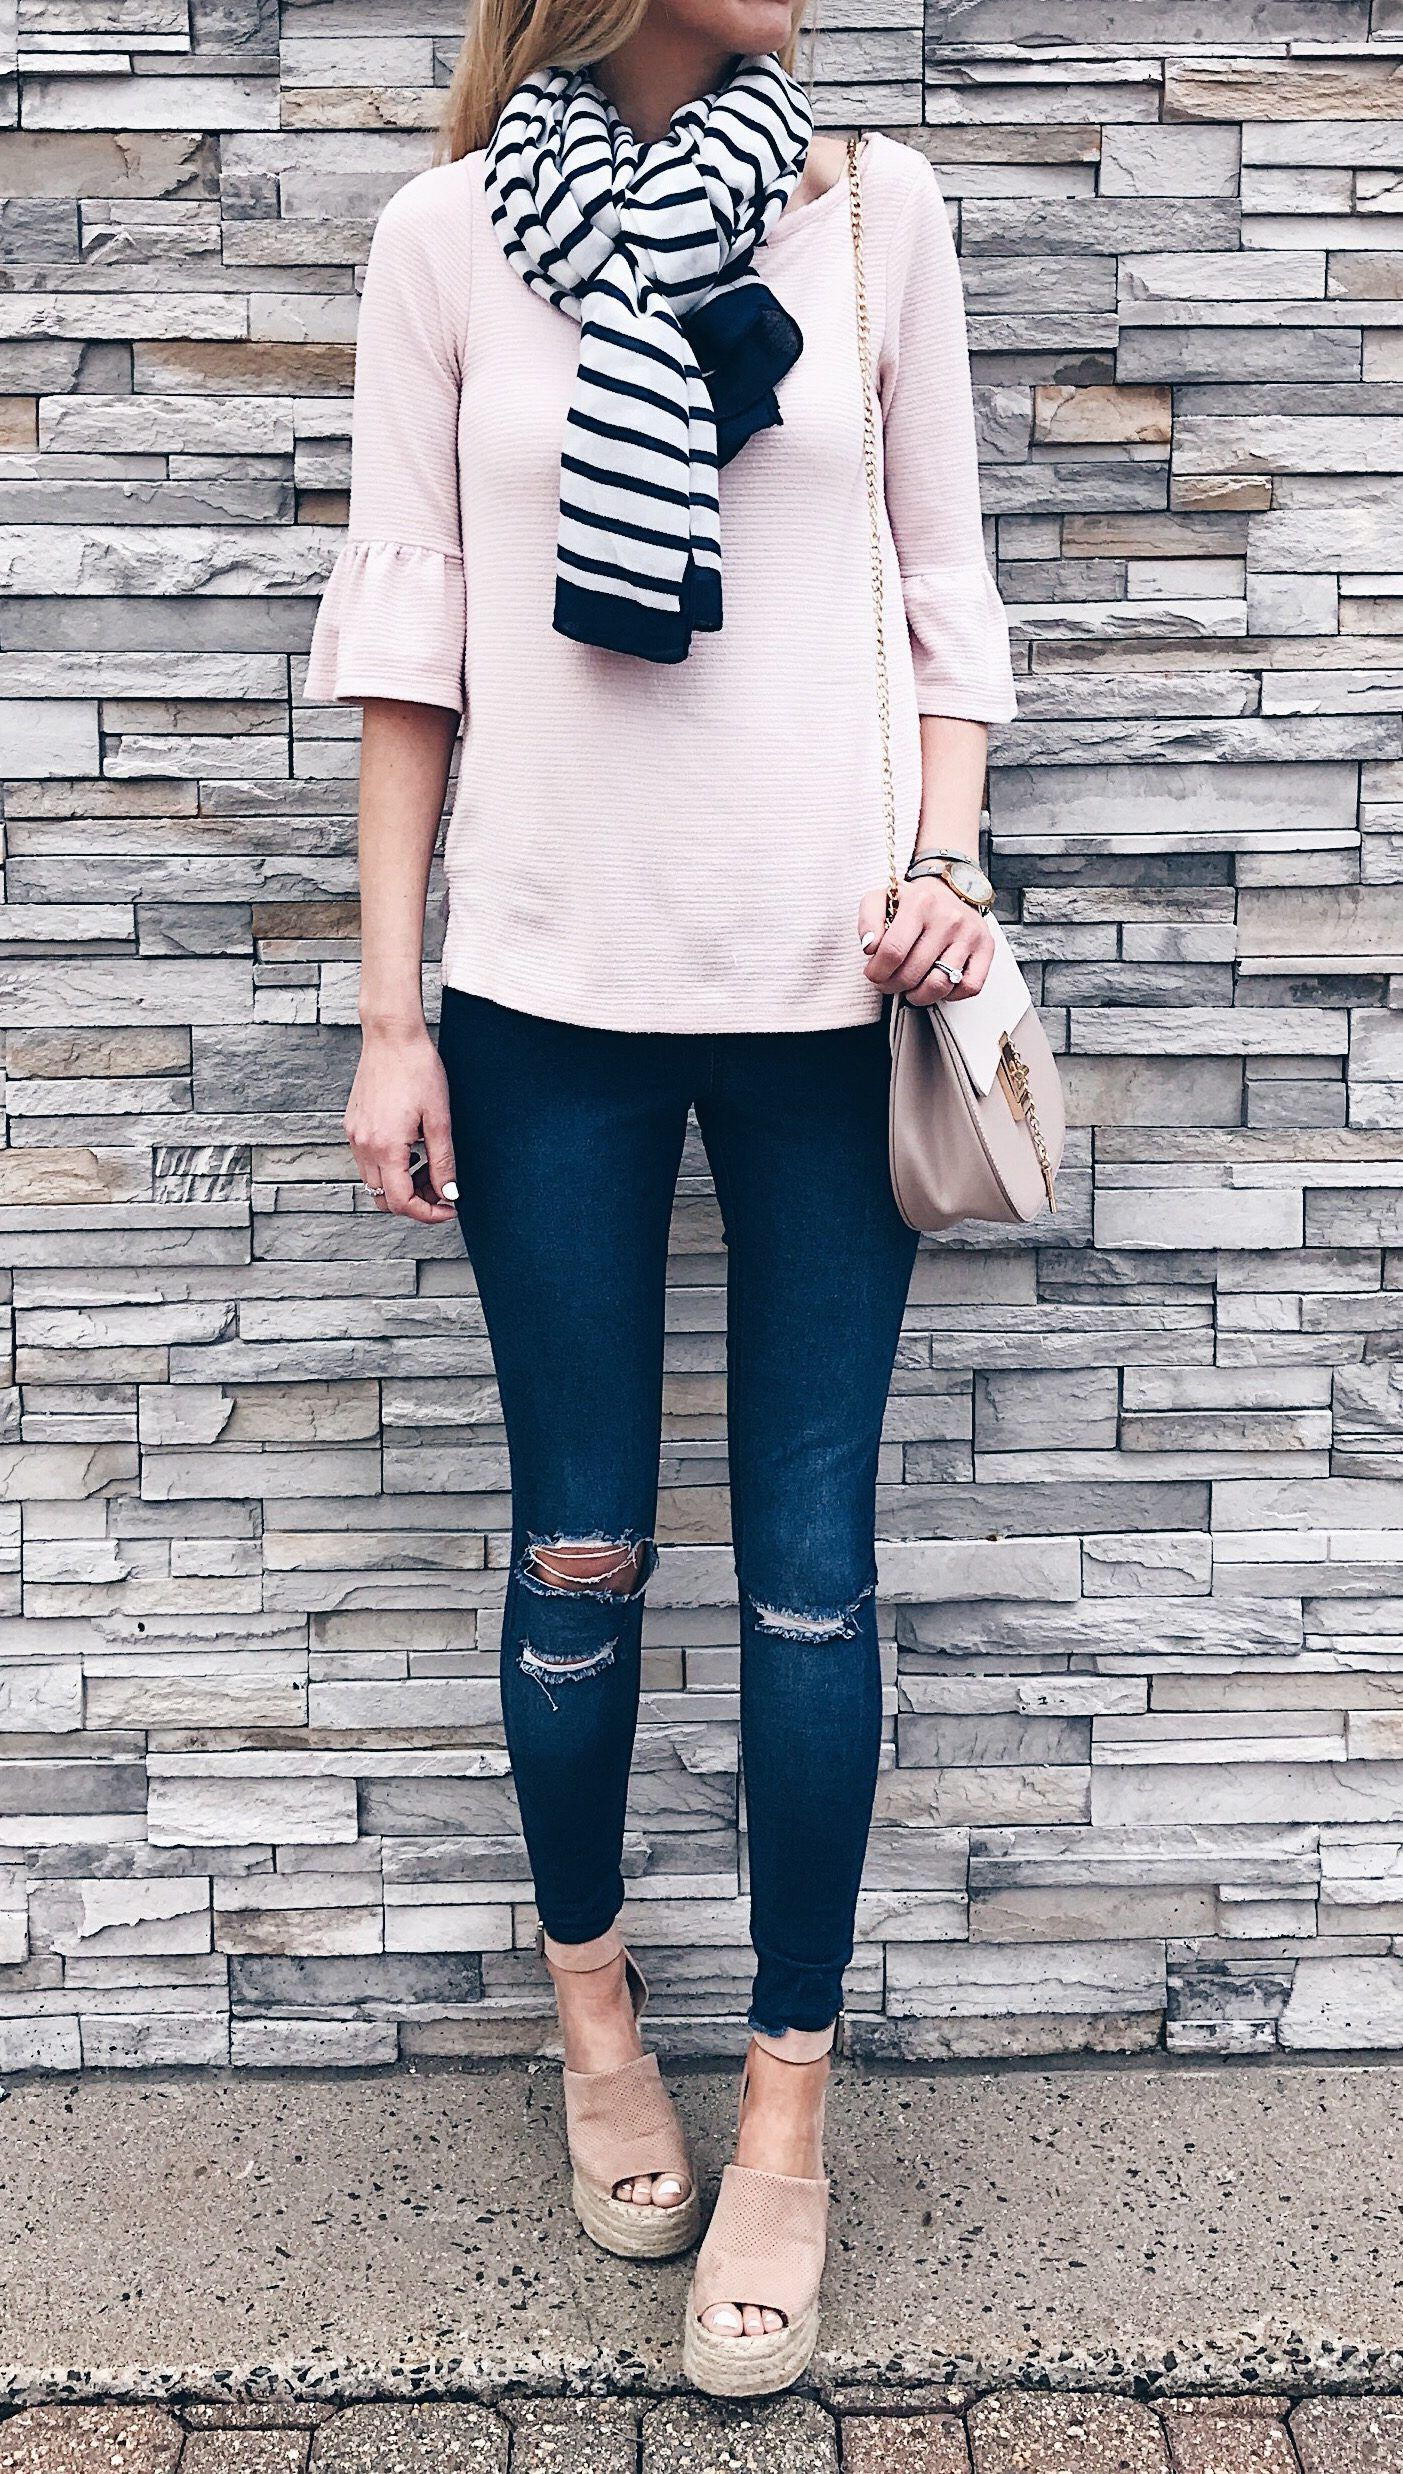 414edd7f4bd spring outfit ideas  pink ruffle sleeve top with jeggings and wedge sandals